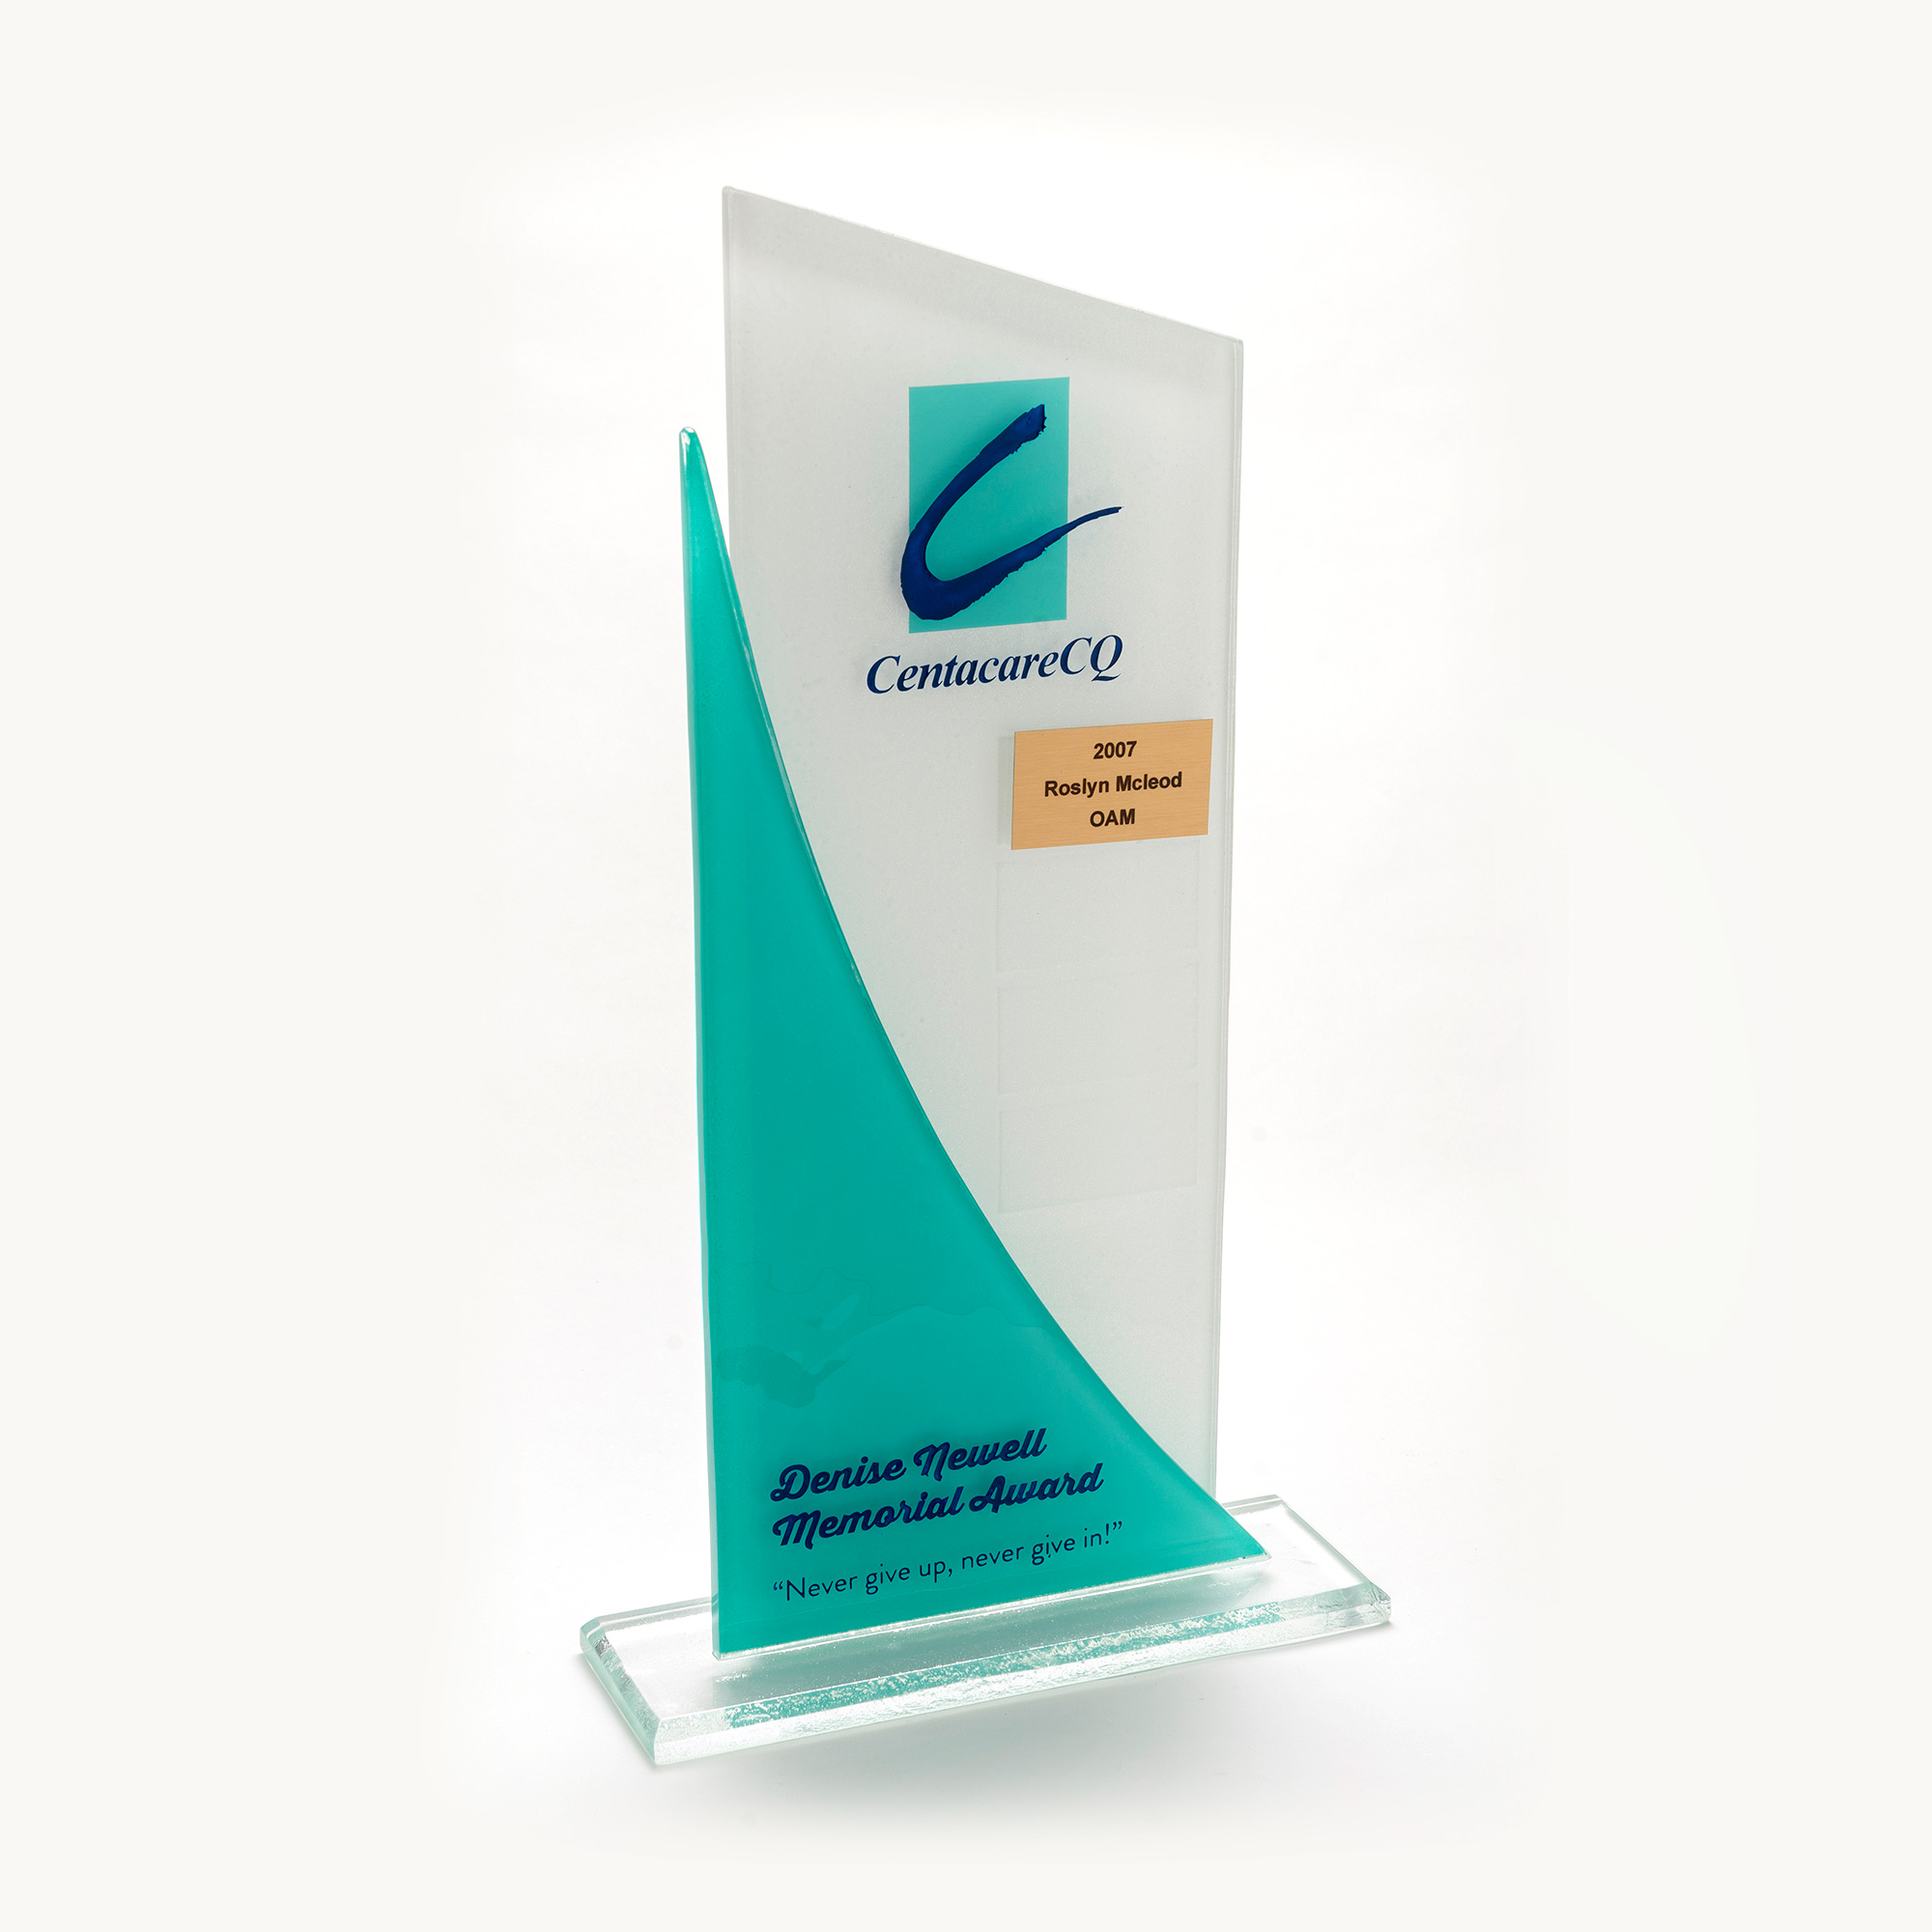 Personalized Perpetual Trophies And Awards Melbourne AUS